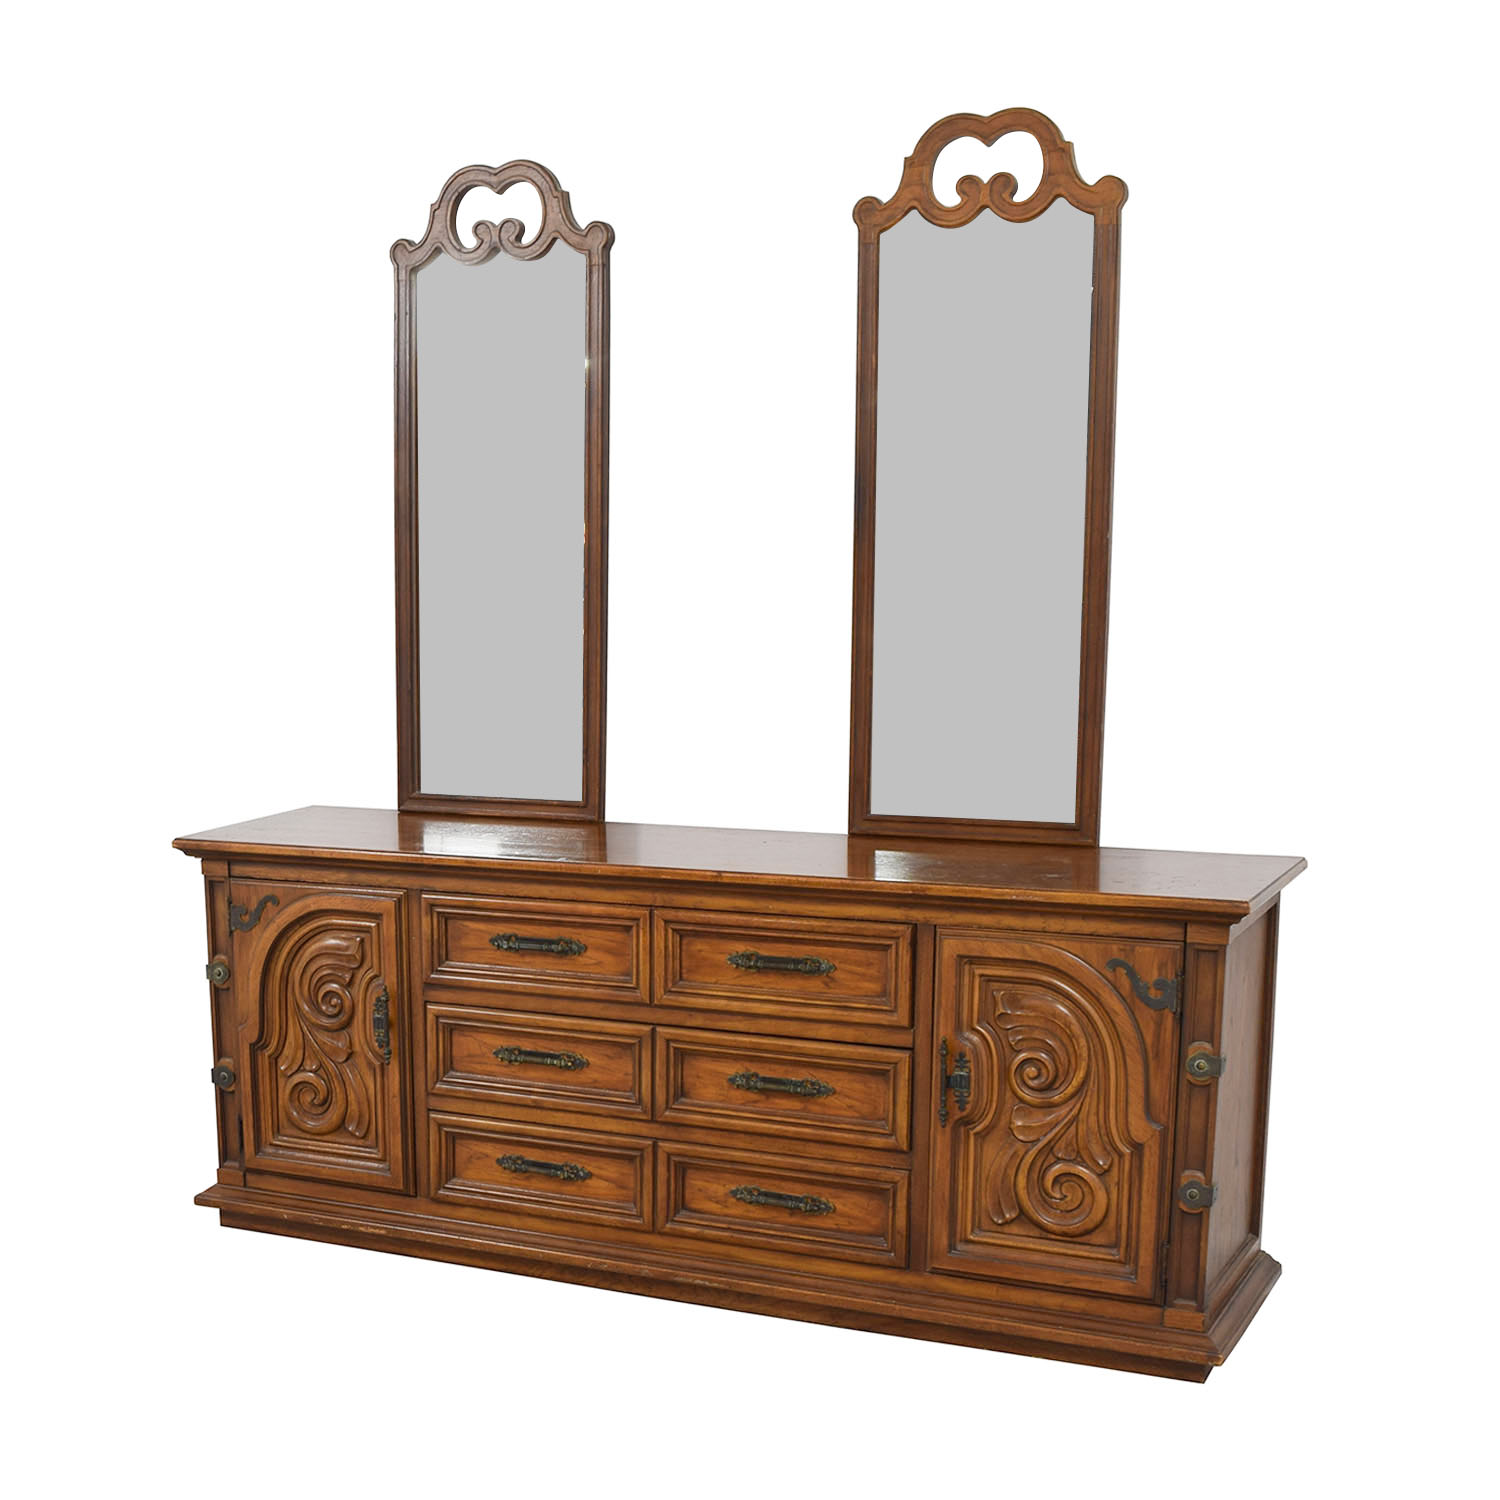 Thomasville Thomasville Double Dresser with Double Mirror Dressers